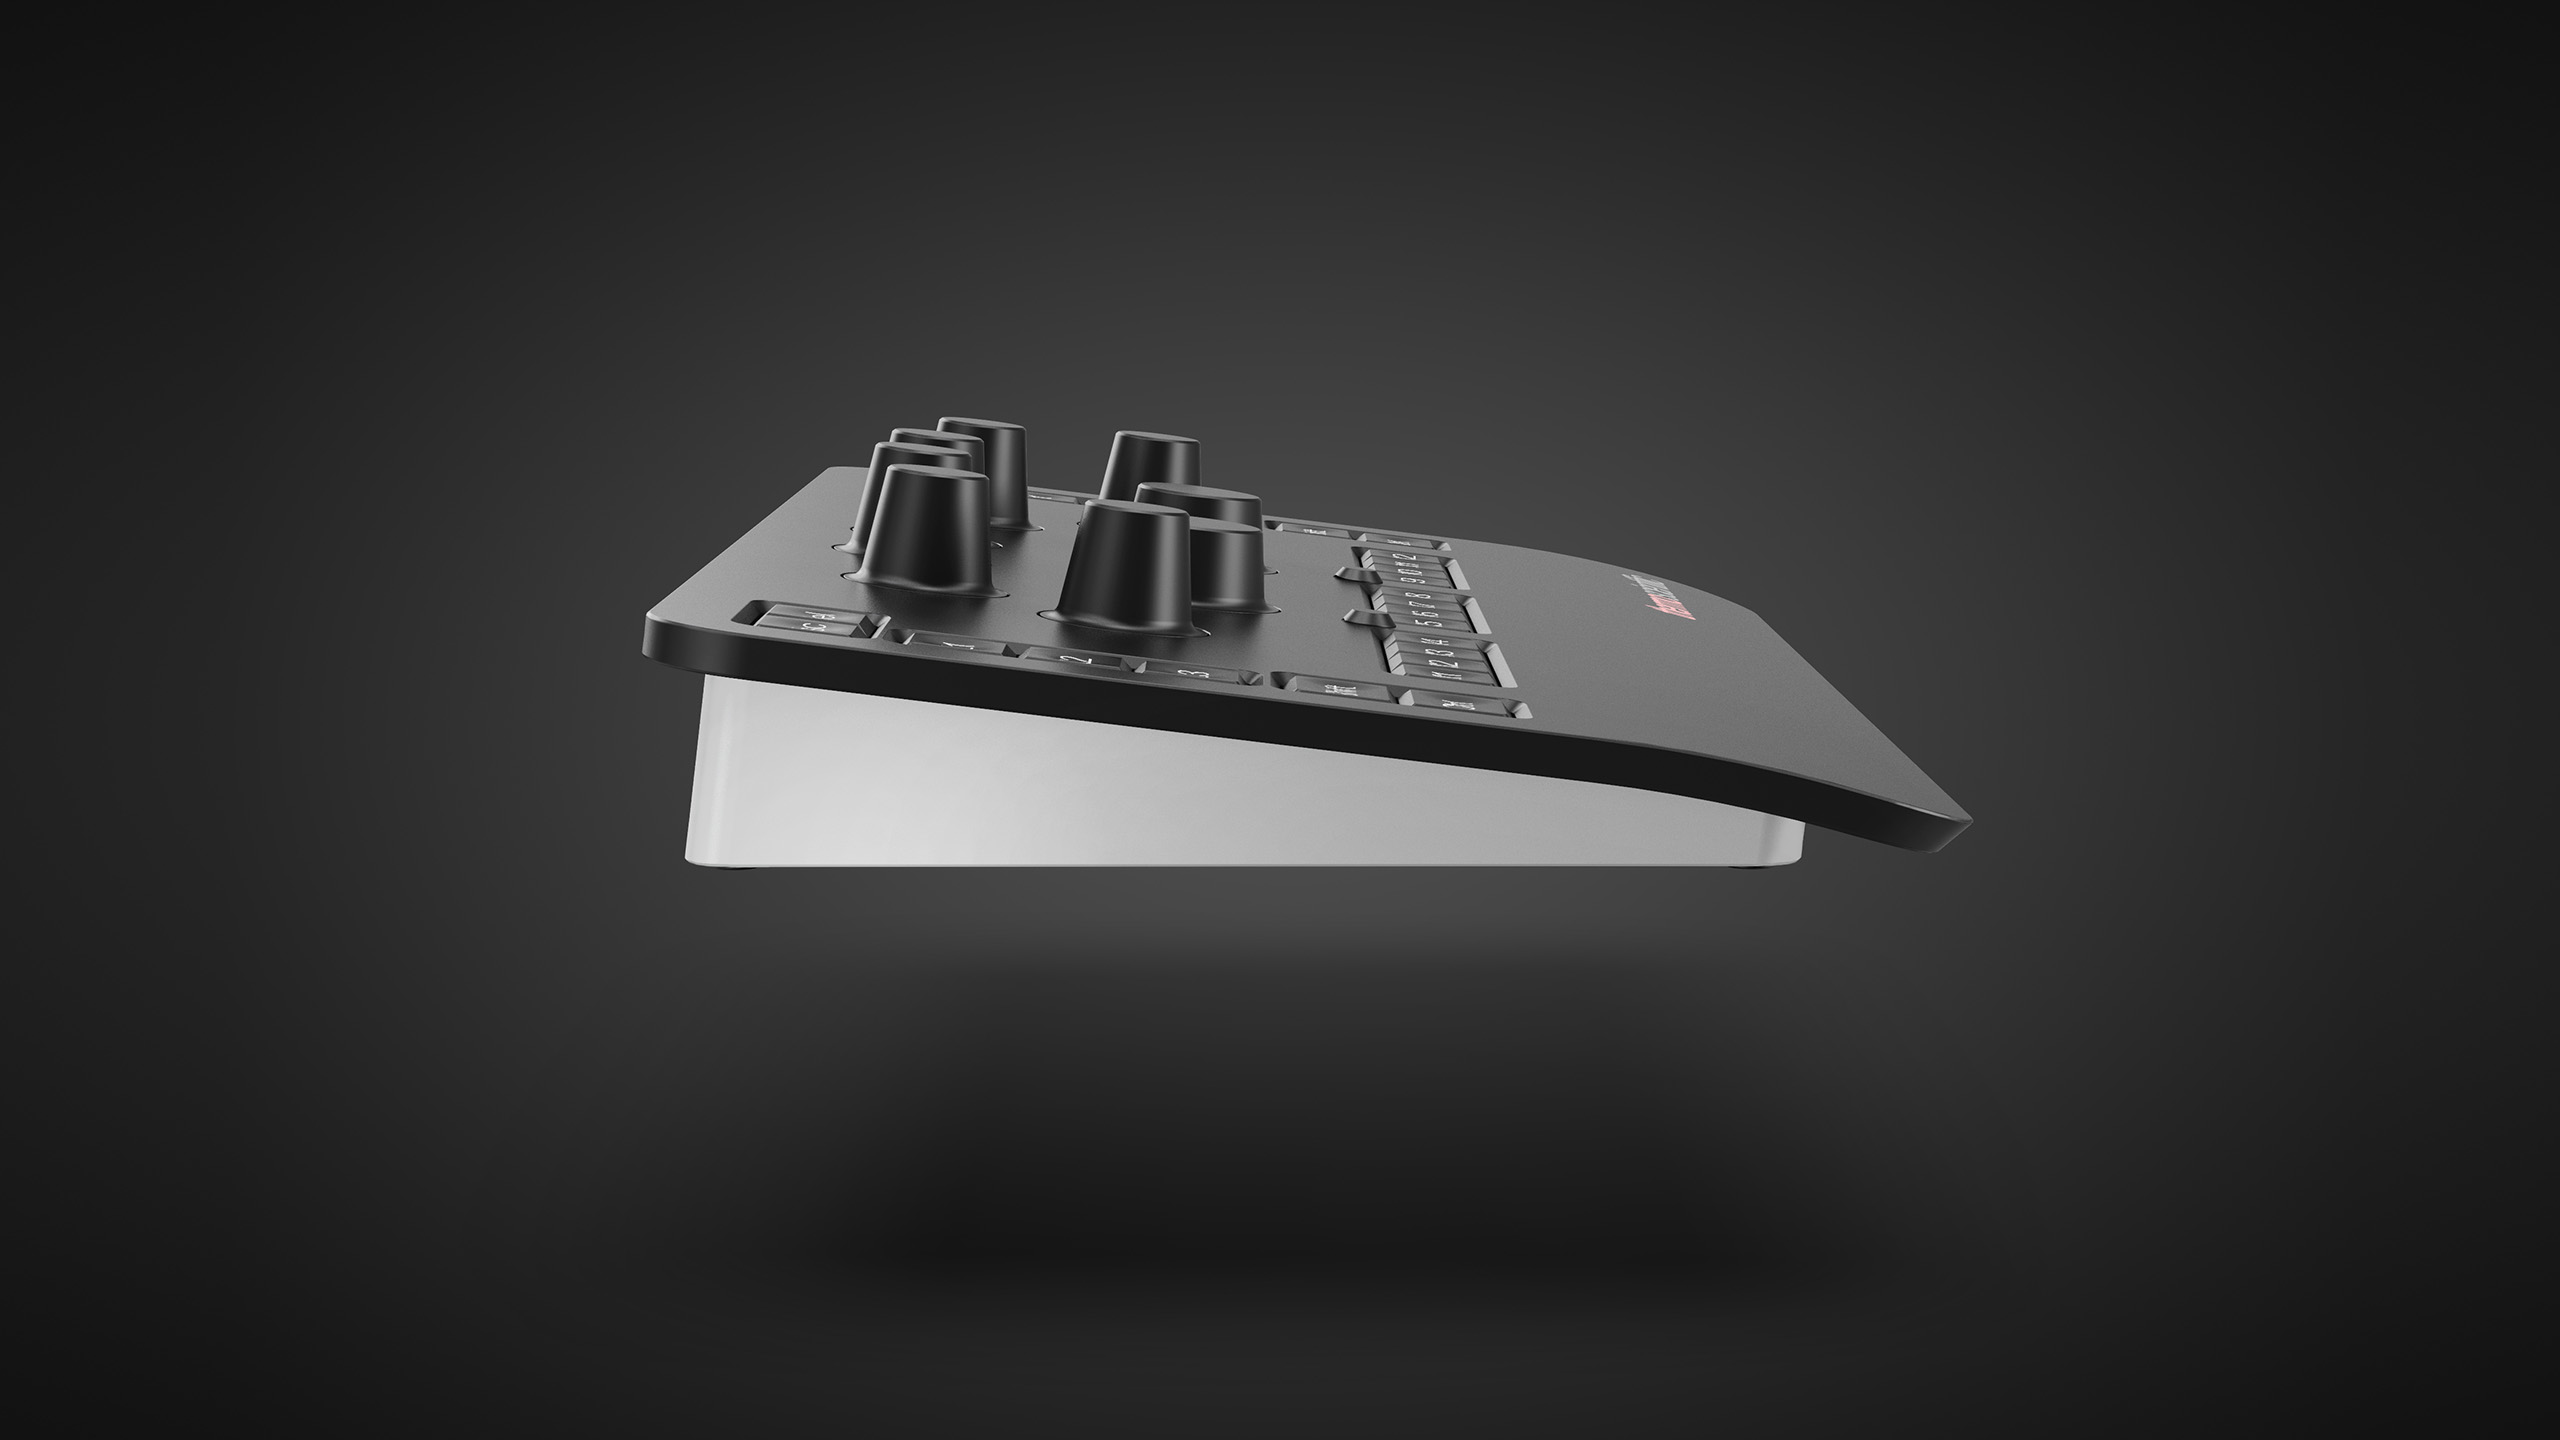 thermo scientific keyboard side